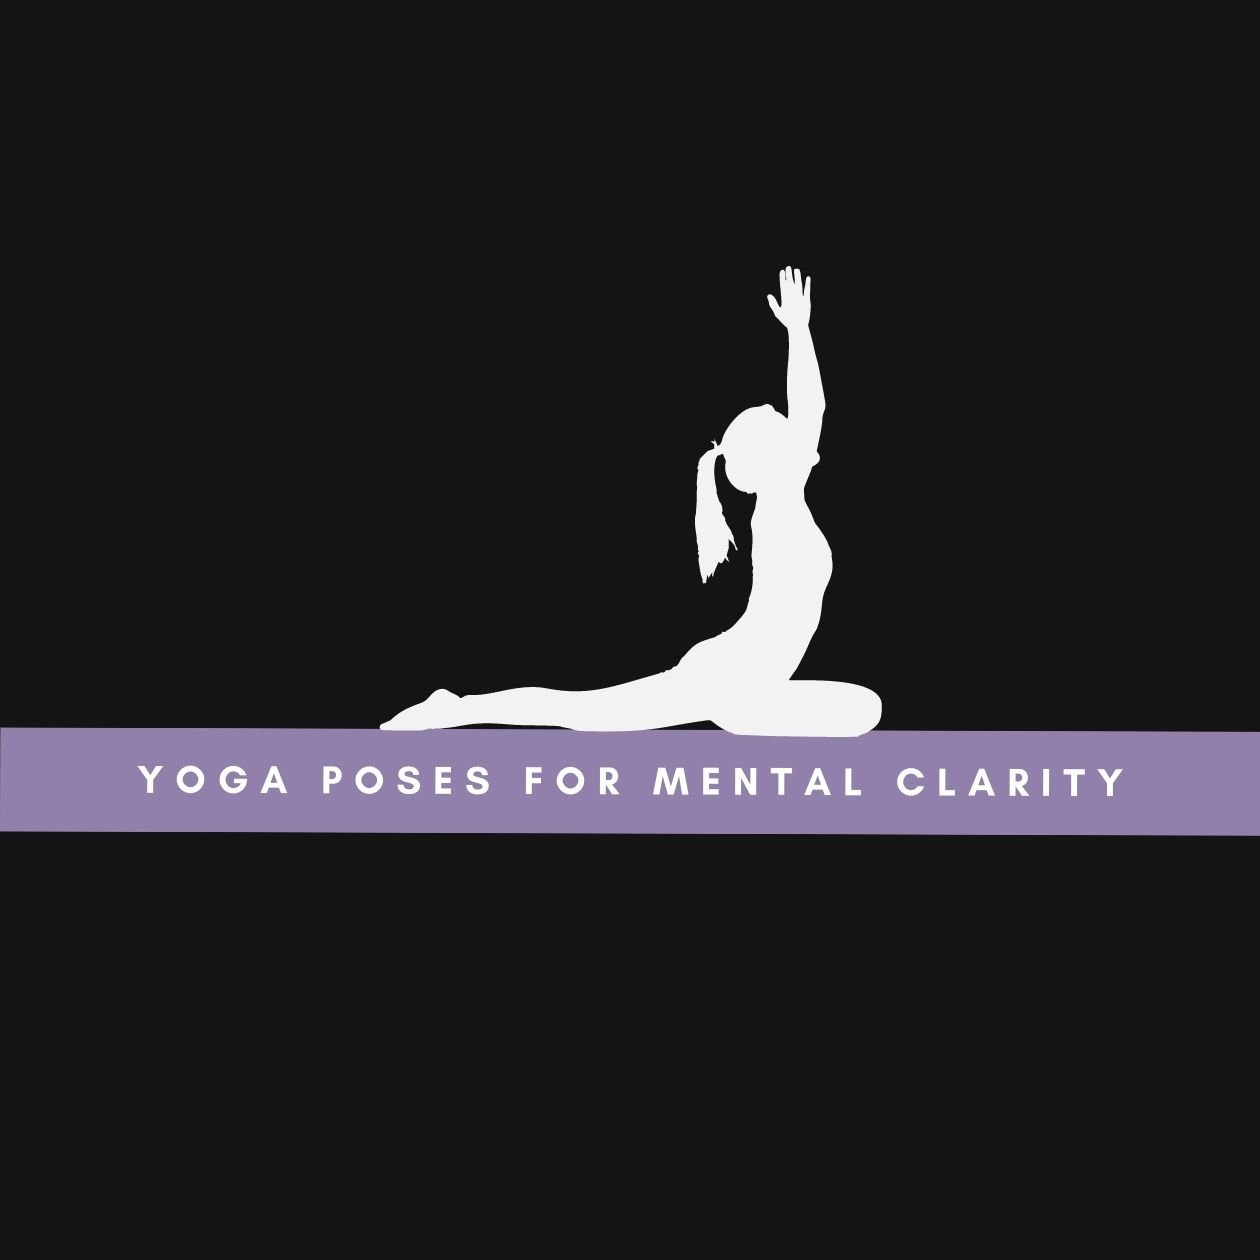 Yoga poses for mental clarity: an illustration